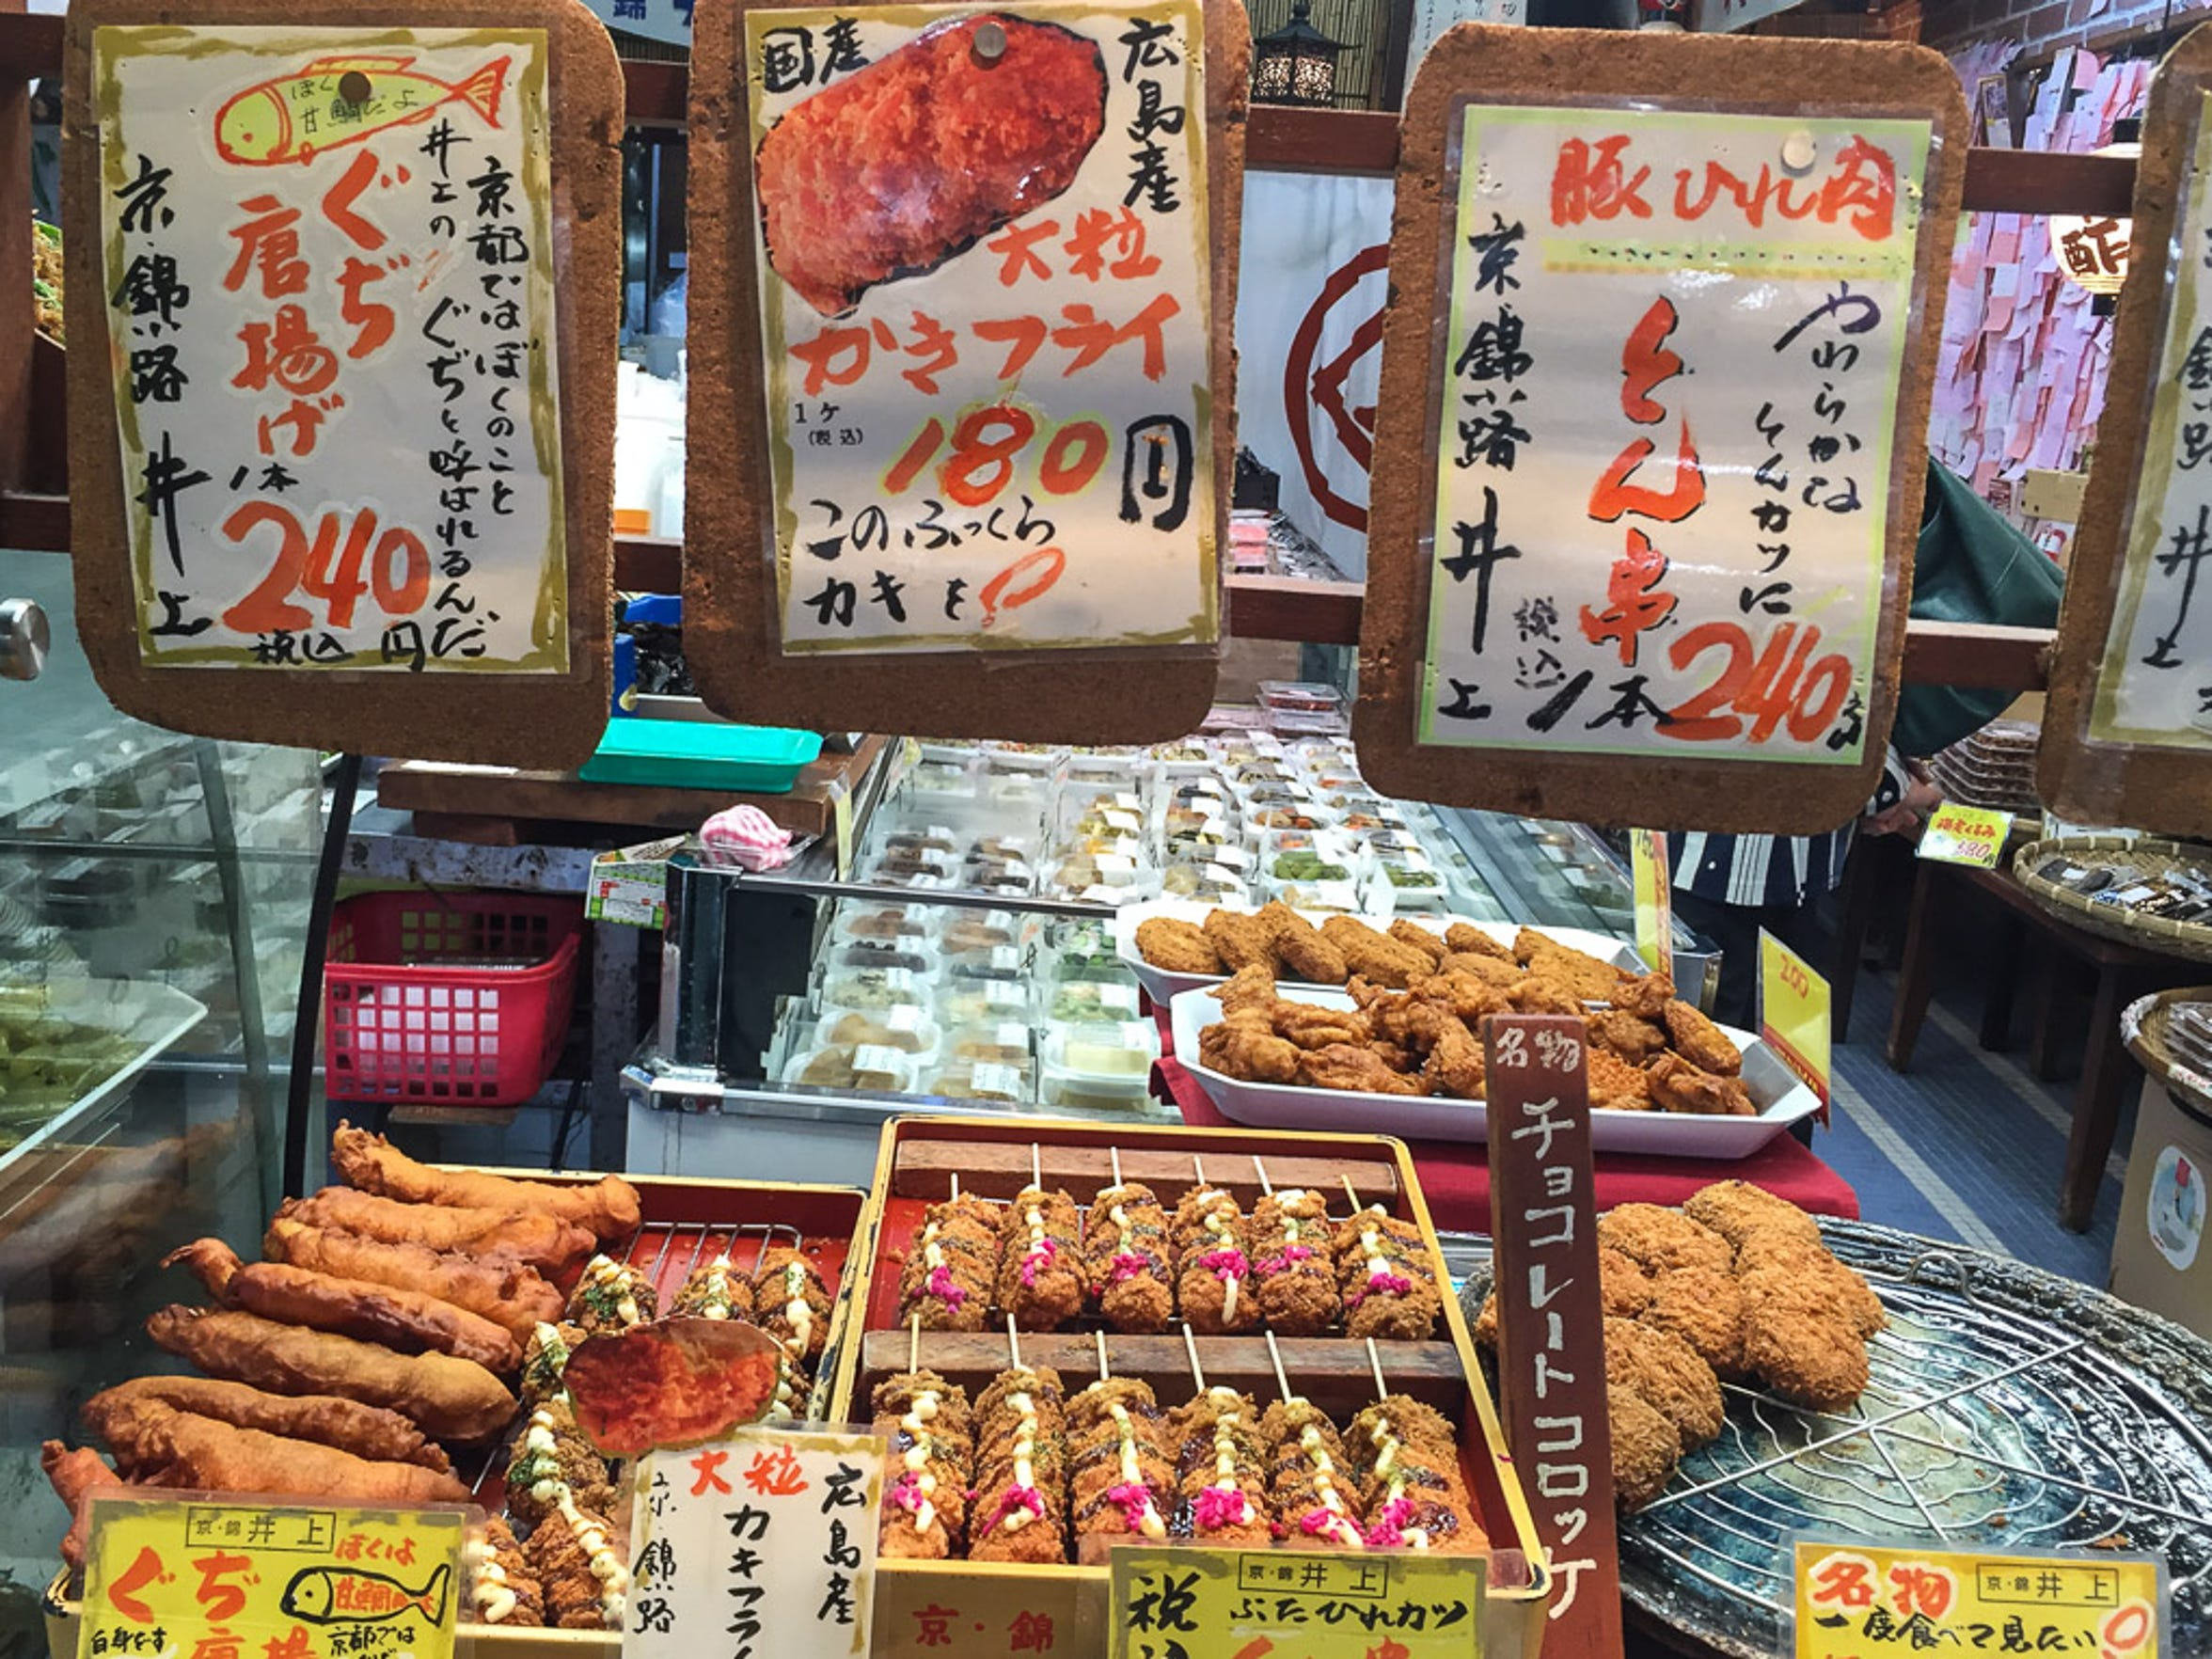 Various unidentifiable forms of fried seafood are available